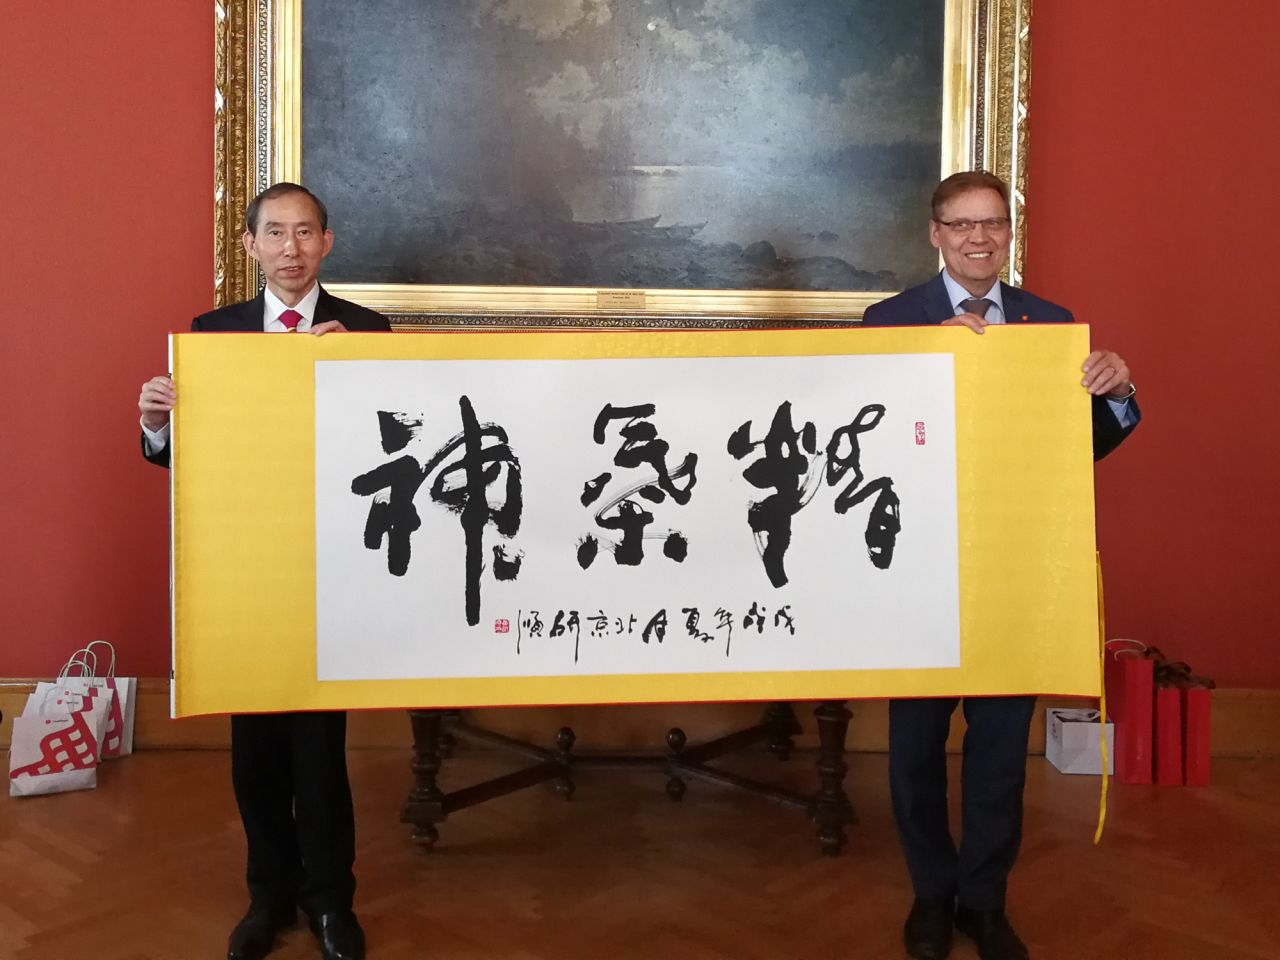 Long Yuxiang (left) presented calligraphy works of renowned Chinese calligrapher Bi Lishun to Lauri Lyly.